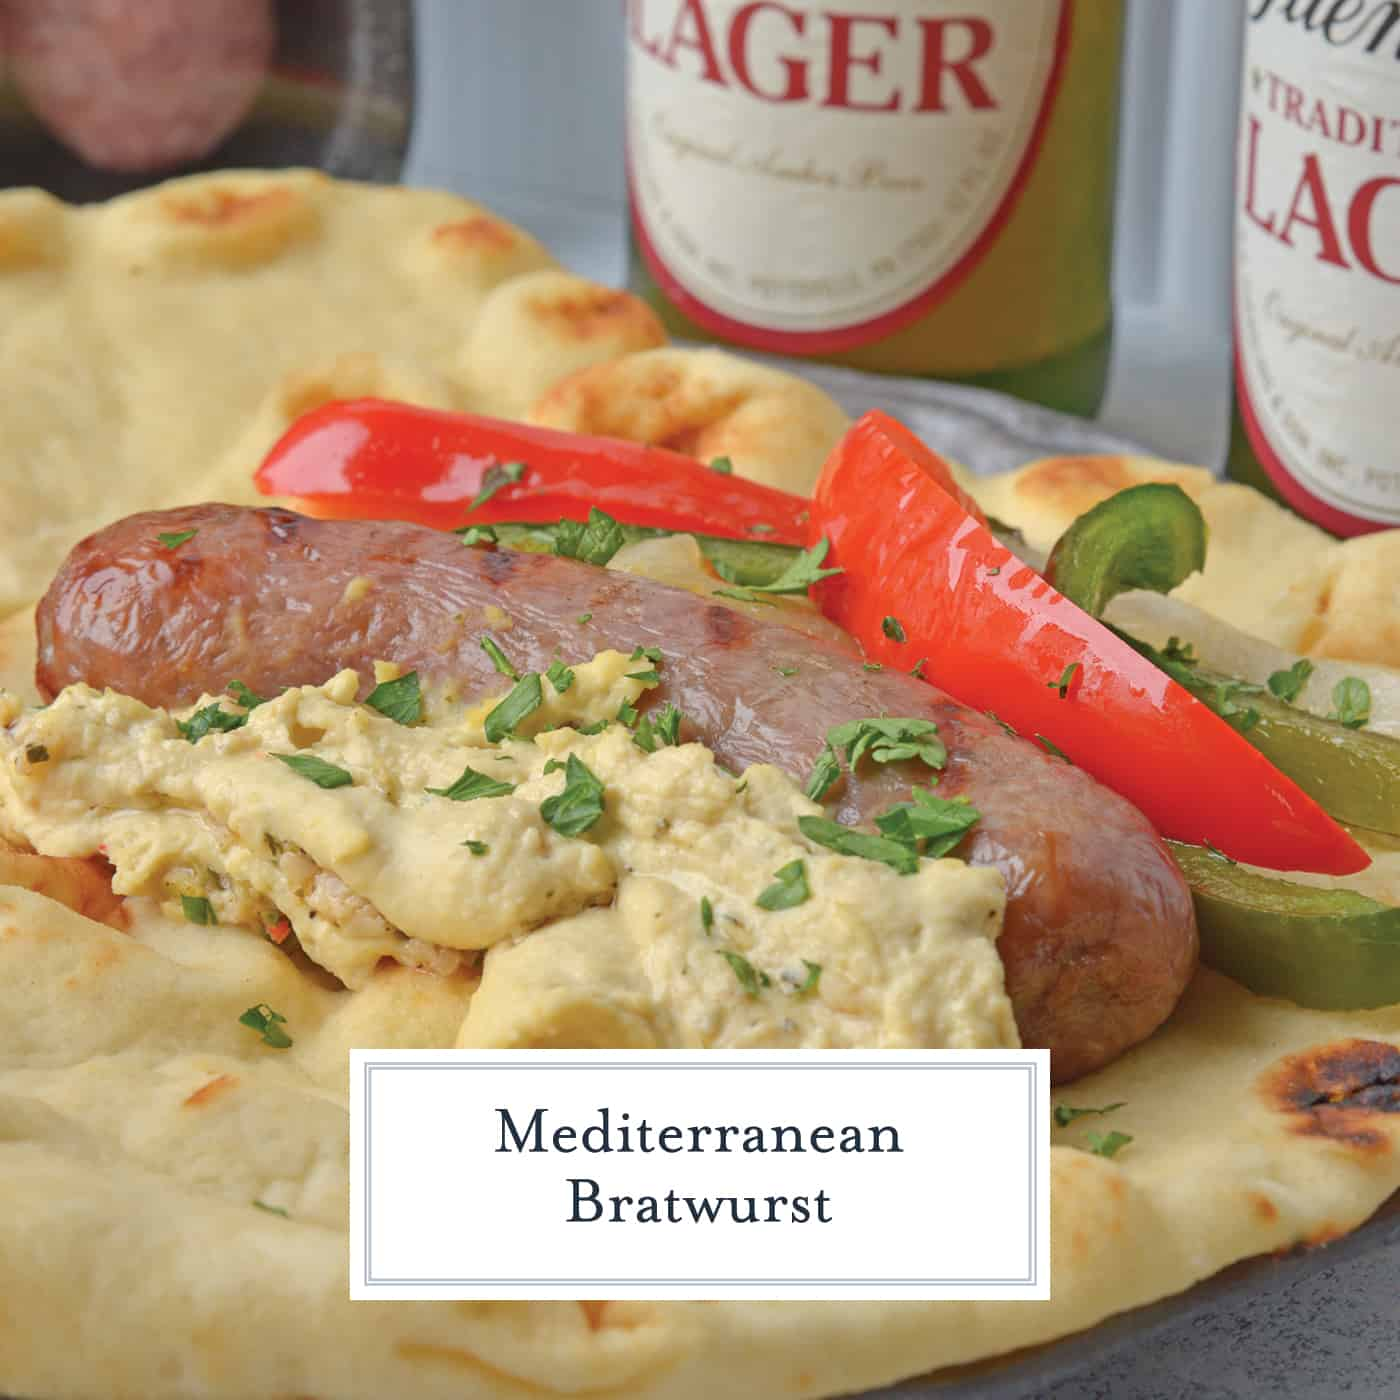 Mediterranean Bratwurst use juicy bratwurst, sautéed bell peppers and onion, garlic hummus and wrapped in tender naan bread. A simple grilled summer meal. #bratwurstsandwich www.savoryexperiments.com